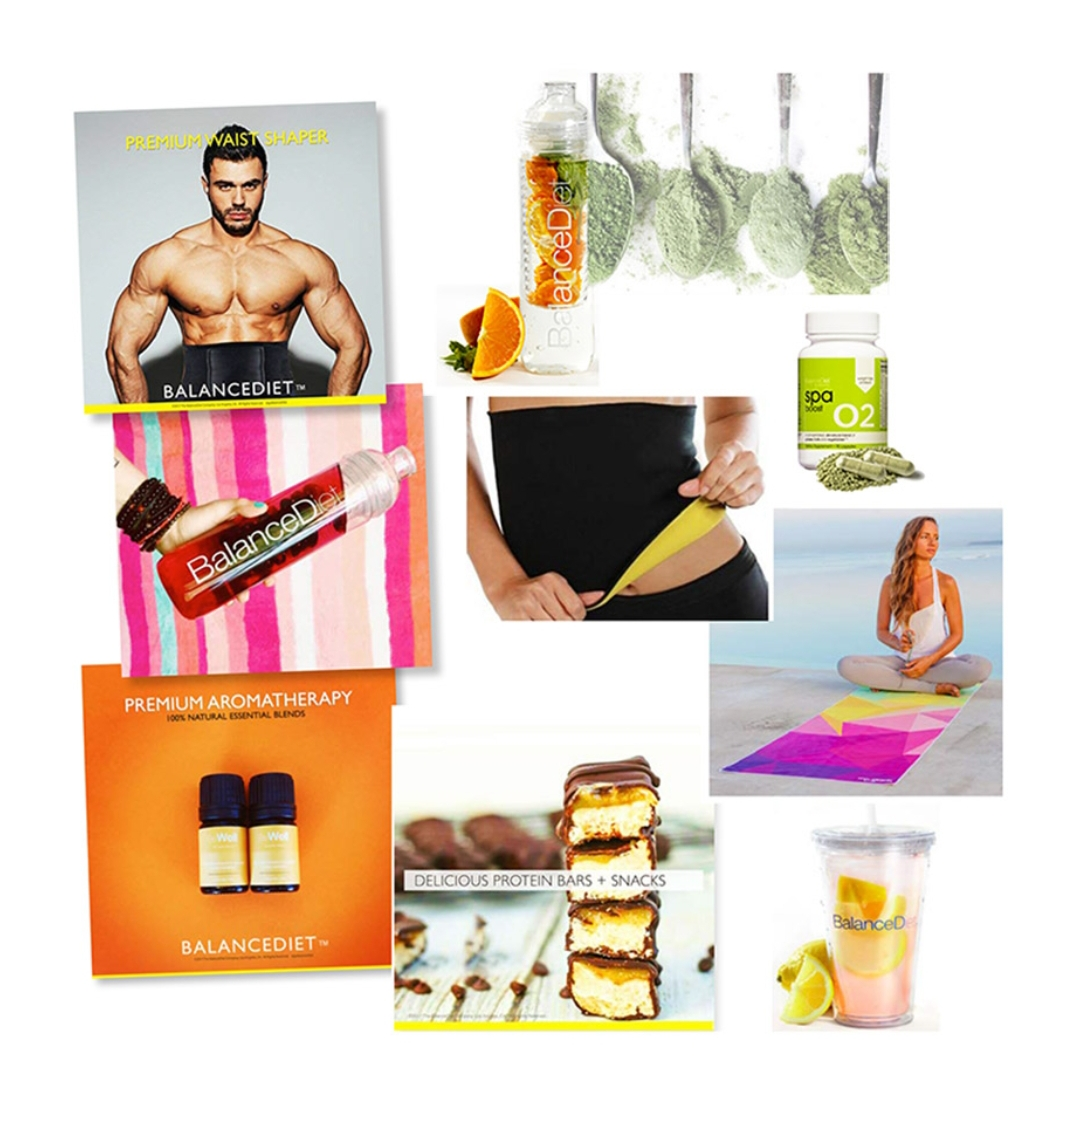 FITNESS AND LIFESTYLE LICENSING CATEGORIES